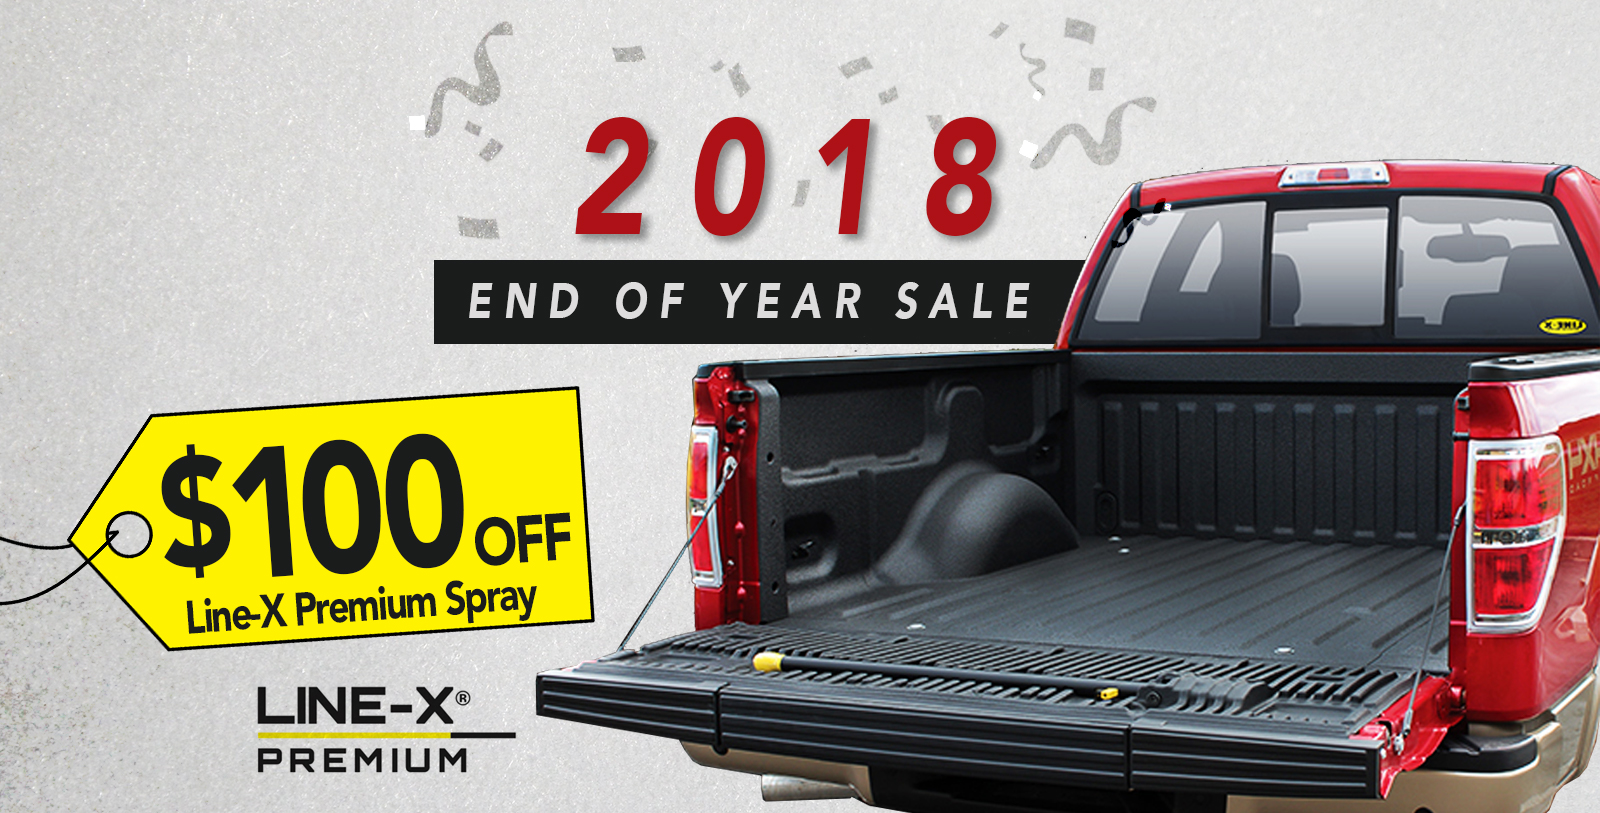 2018 Exclusive Holiday Special: $100.00 OFF Line-X PREMIUM Spray